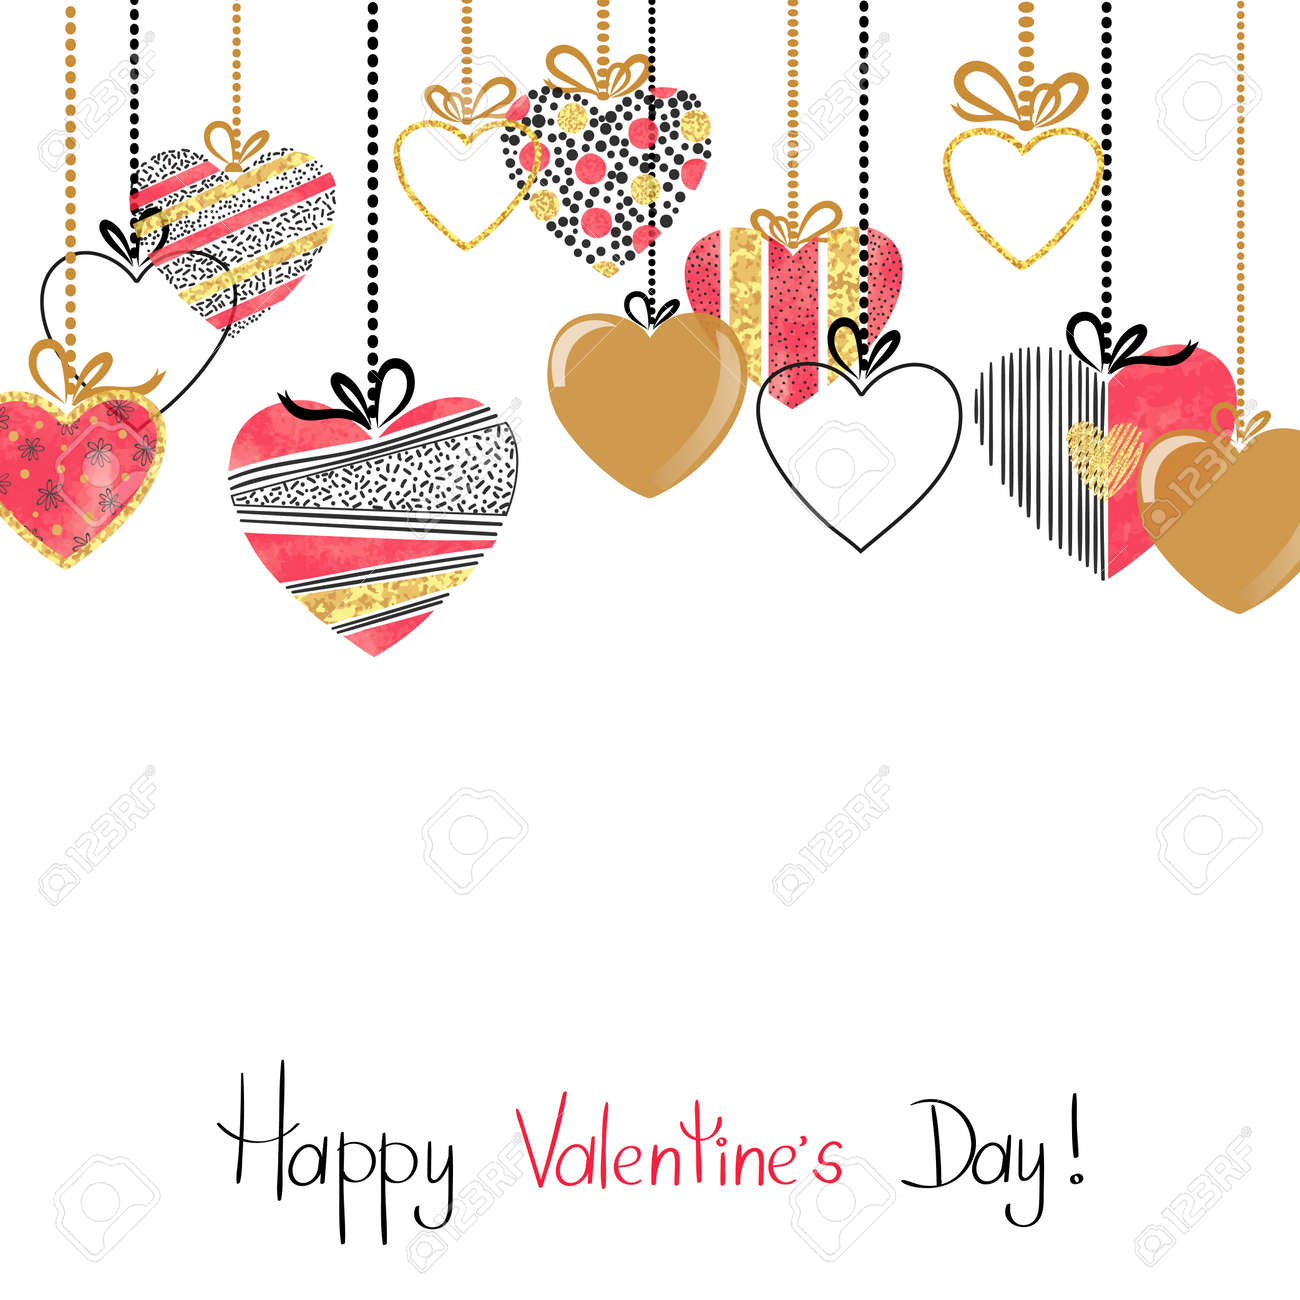 Happy Valentines Day Card With Patterned Hearts Romantic Border